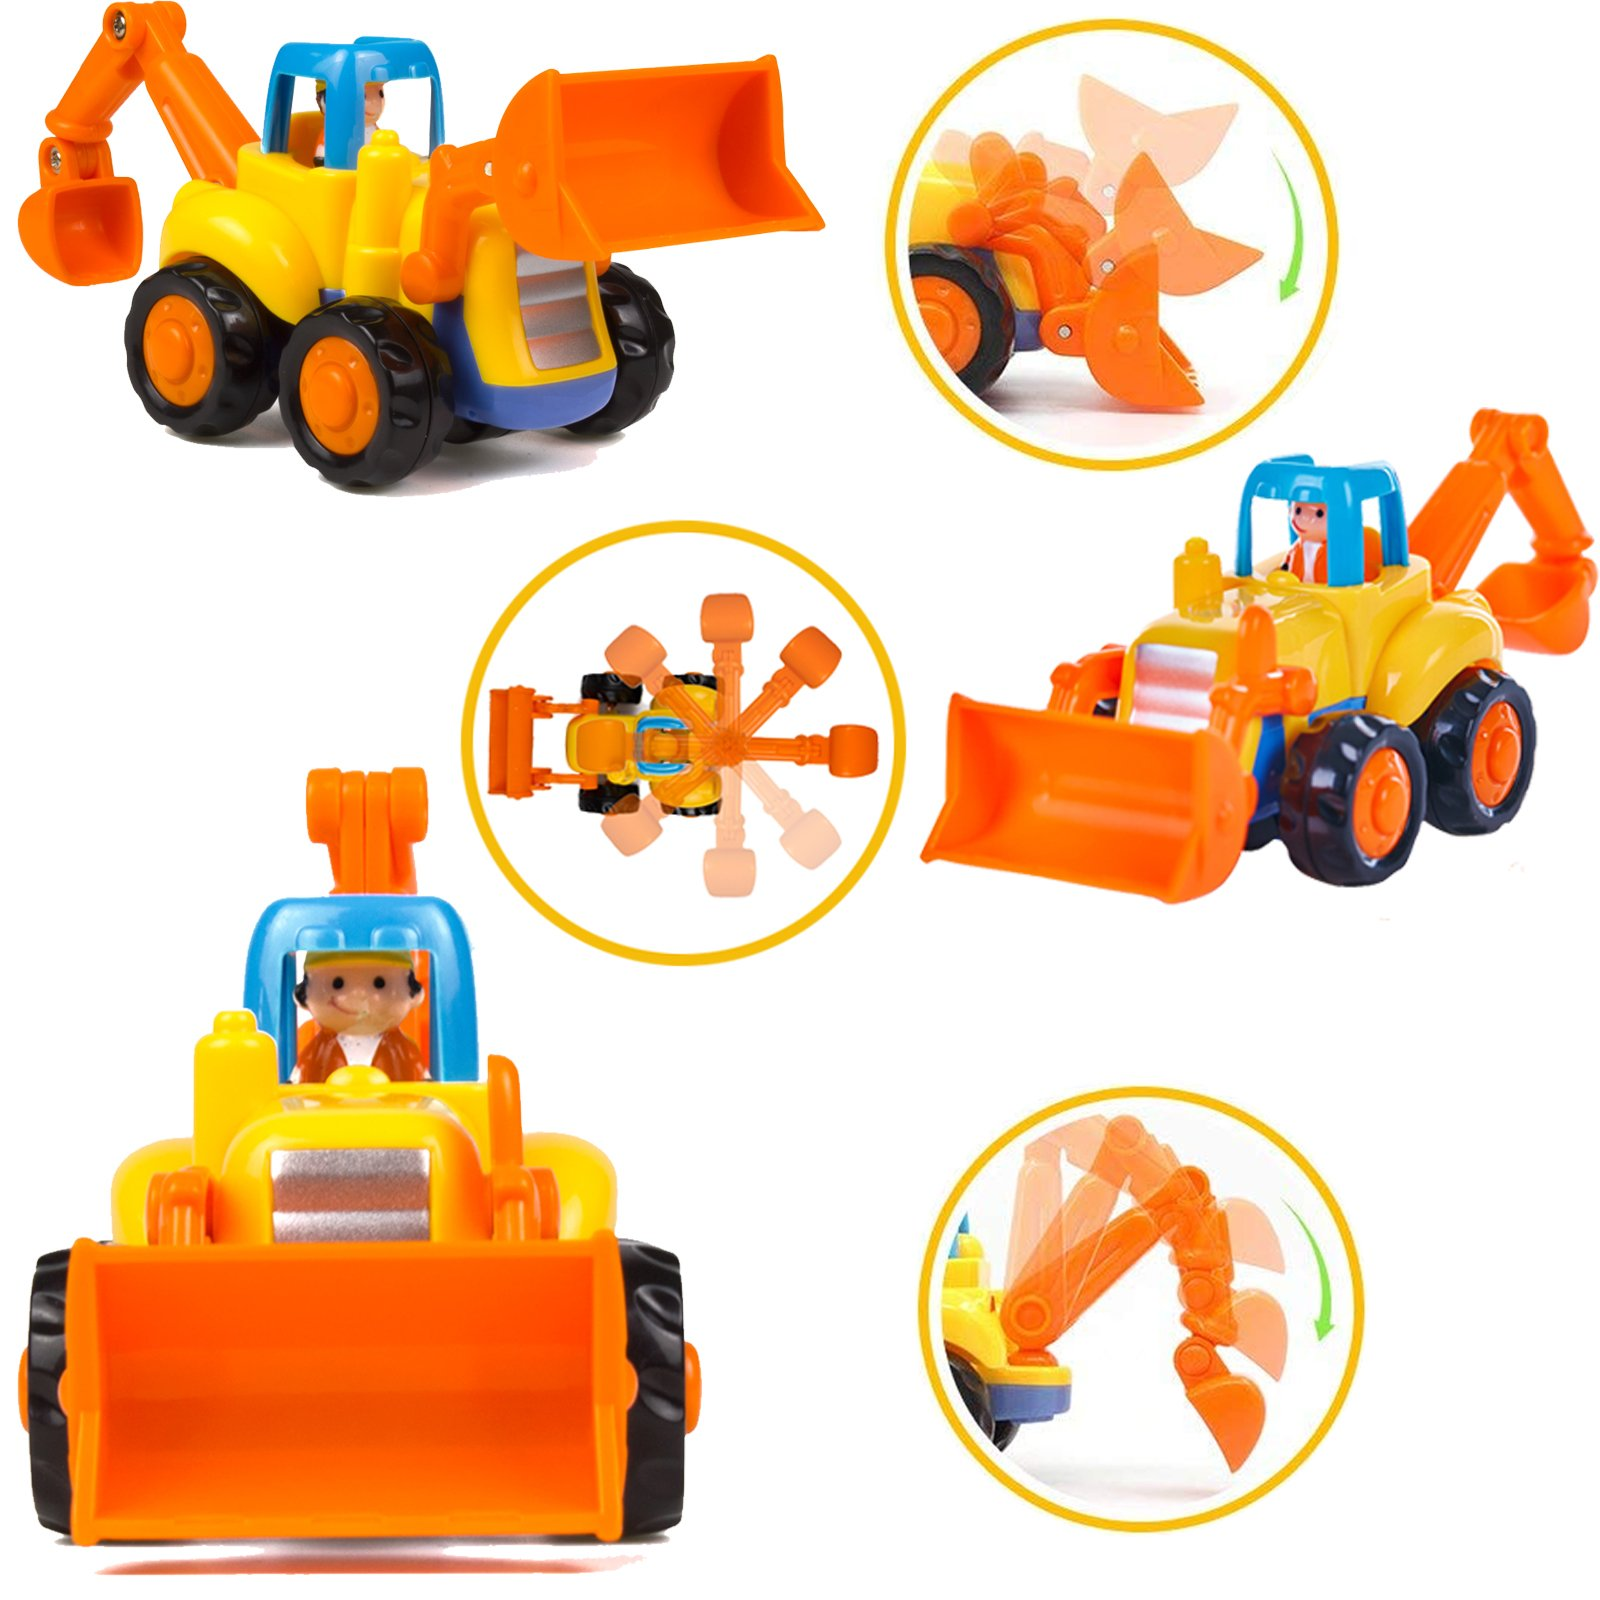 Wolson Push and Go Friction Powered Car Toys Engineering Vehicles Set Tractor Bulldozer Mixer Truck and Dumper for Baby Toddlers by Wolson (Image #4)